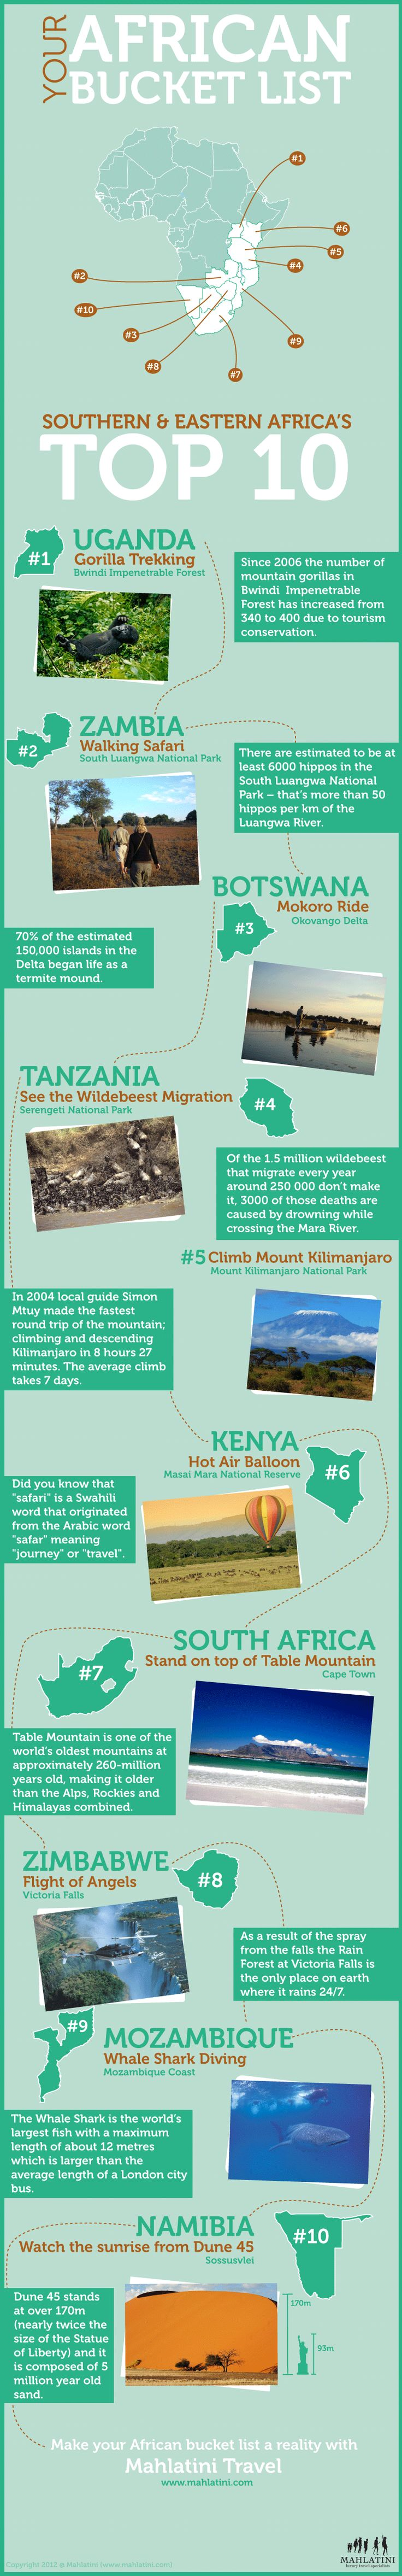 Africa is a wonderful continent full of excitement and adventure. Check out this great infographic that was developed by the great people over at Mahl